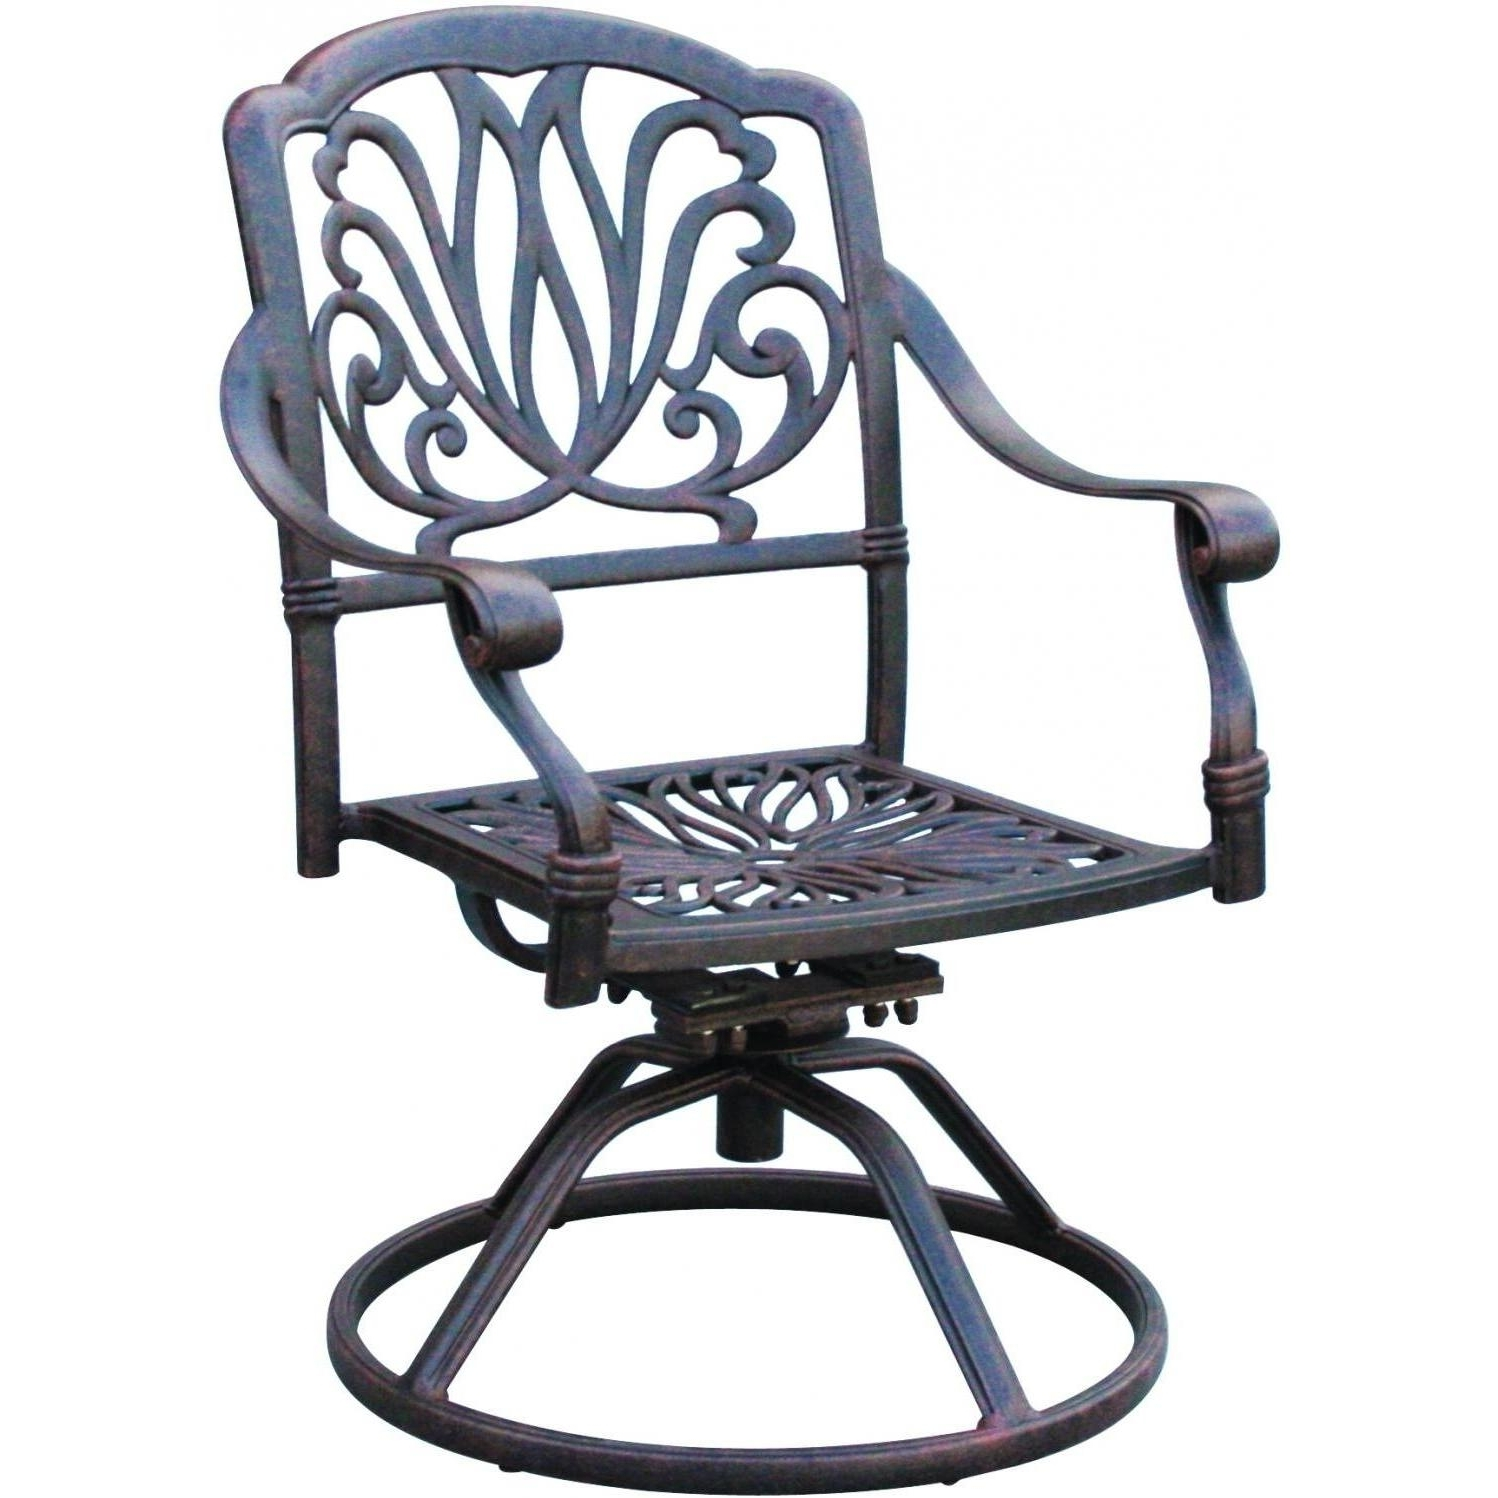 2017 Iron Rocking Patio Chairs In Black Wrought Iron Swivel Rocker Patio Chairs Using Black Wooden (View 1 of 15)